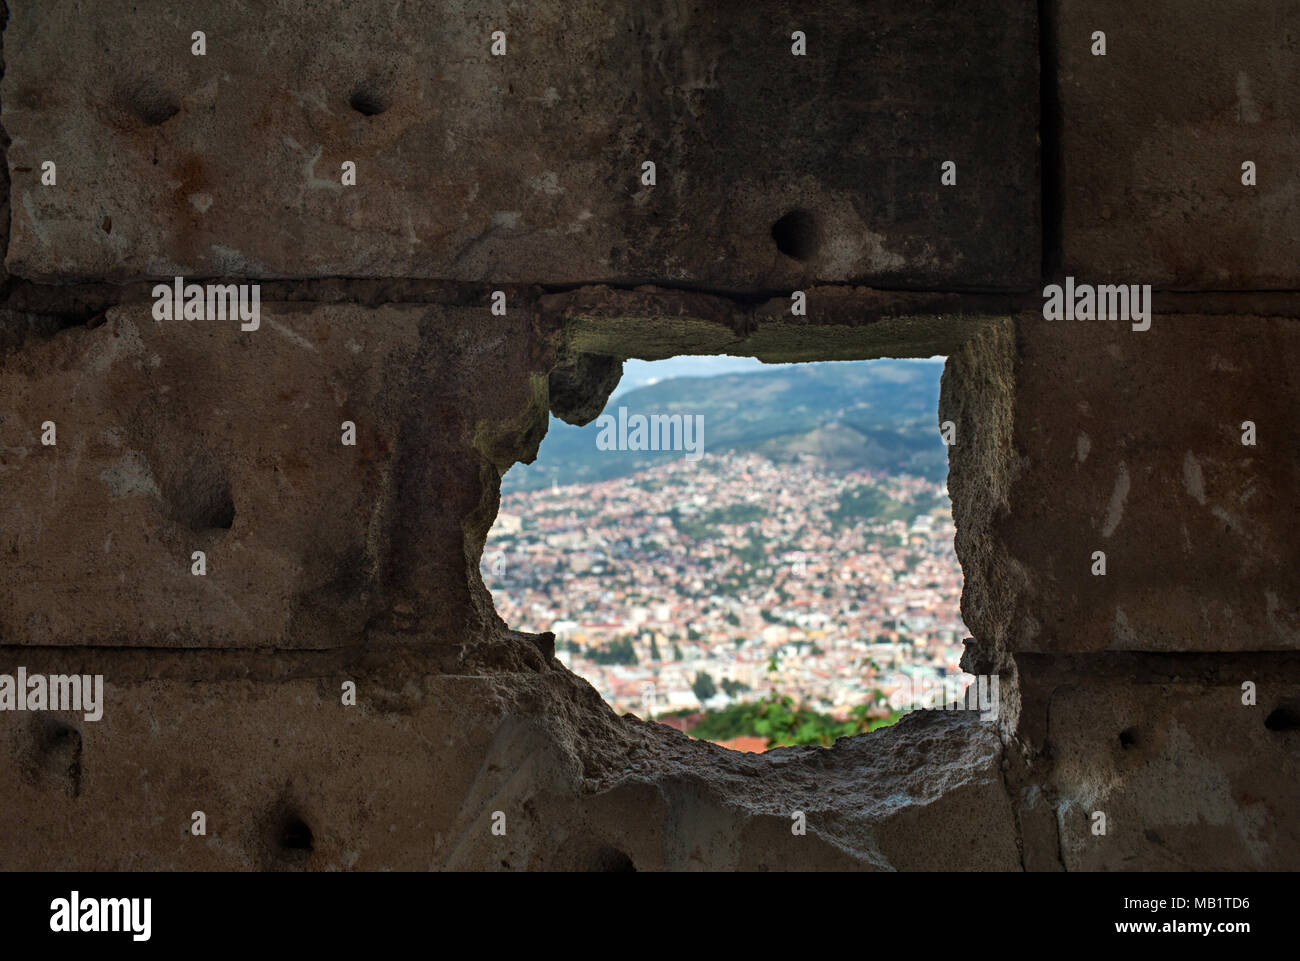 Panoramic View Of The Sarajevo City From Inside Of An Abandoned Destroyed Building By War, Capital Of Bosnia And Herzegovina In Balkan Eastern Europe - Stock Image